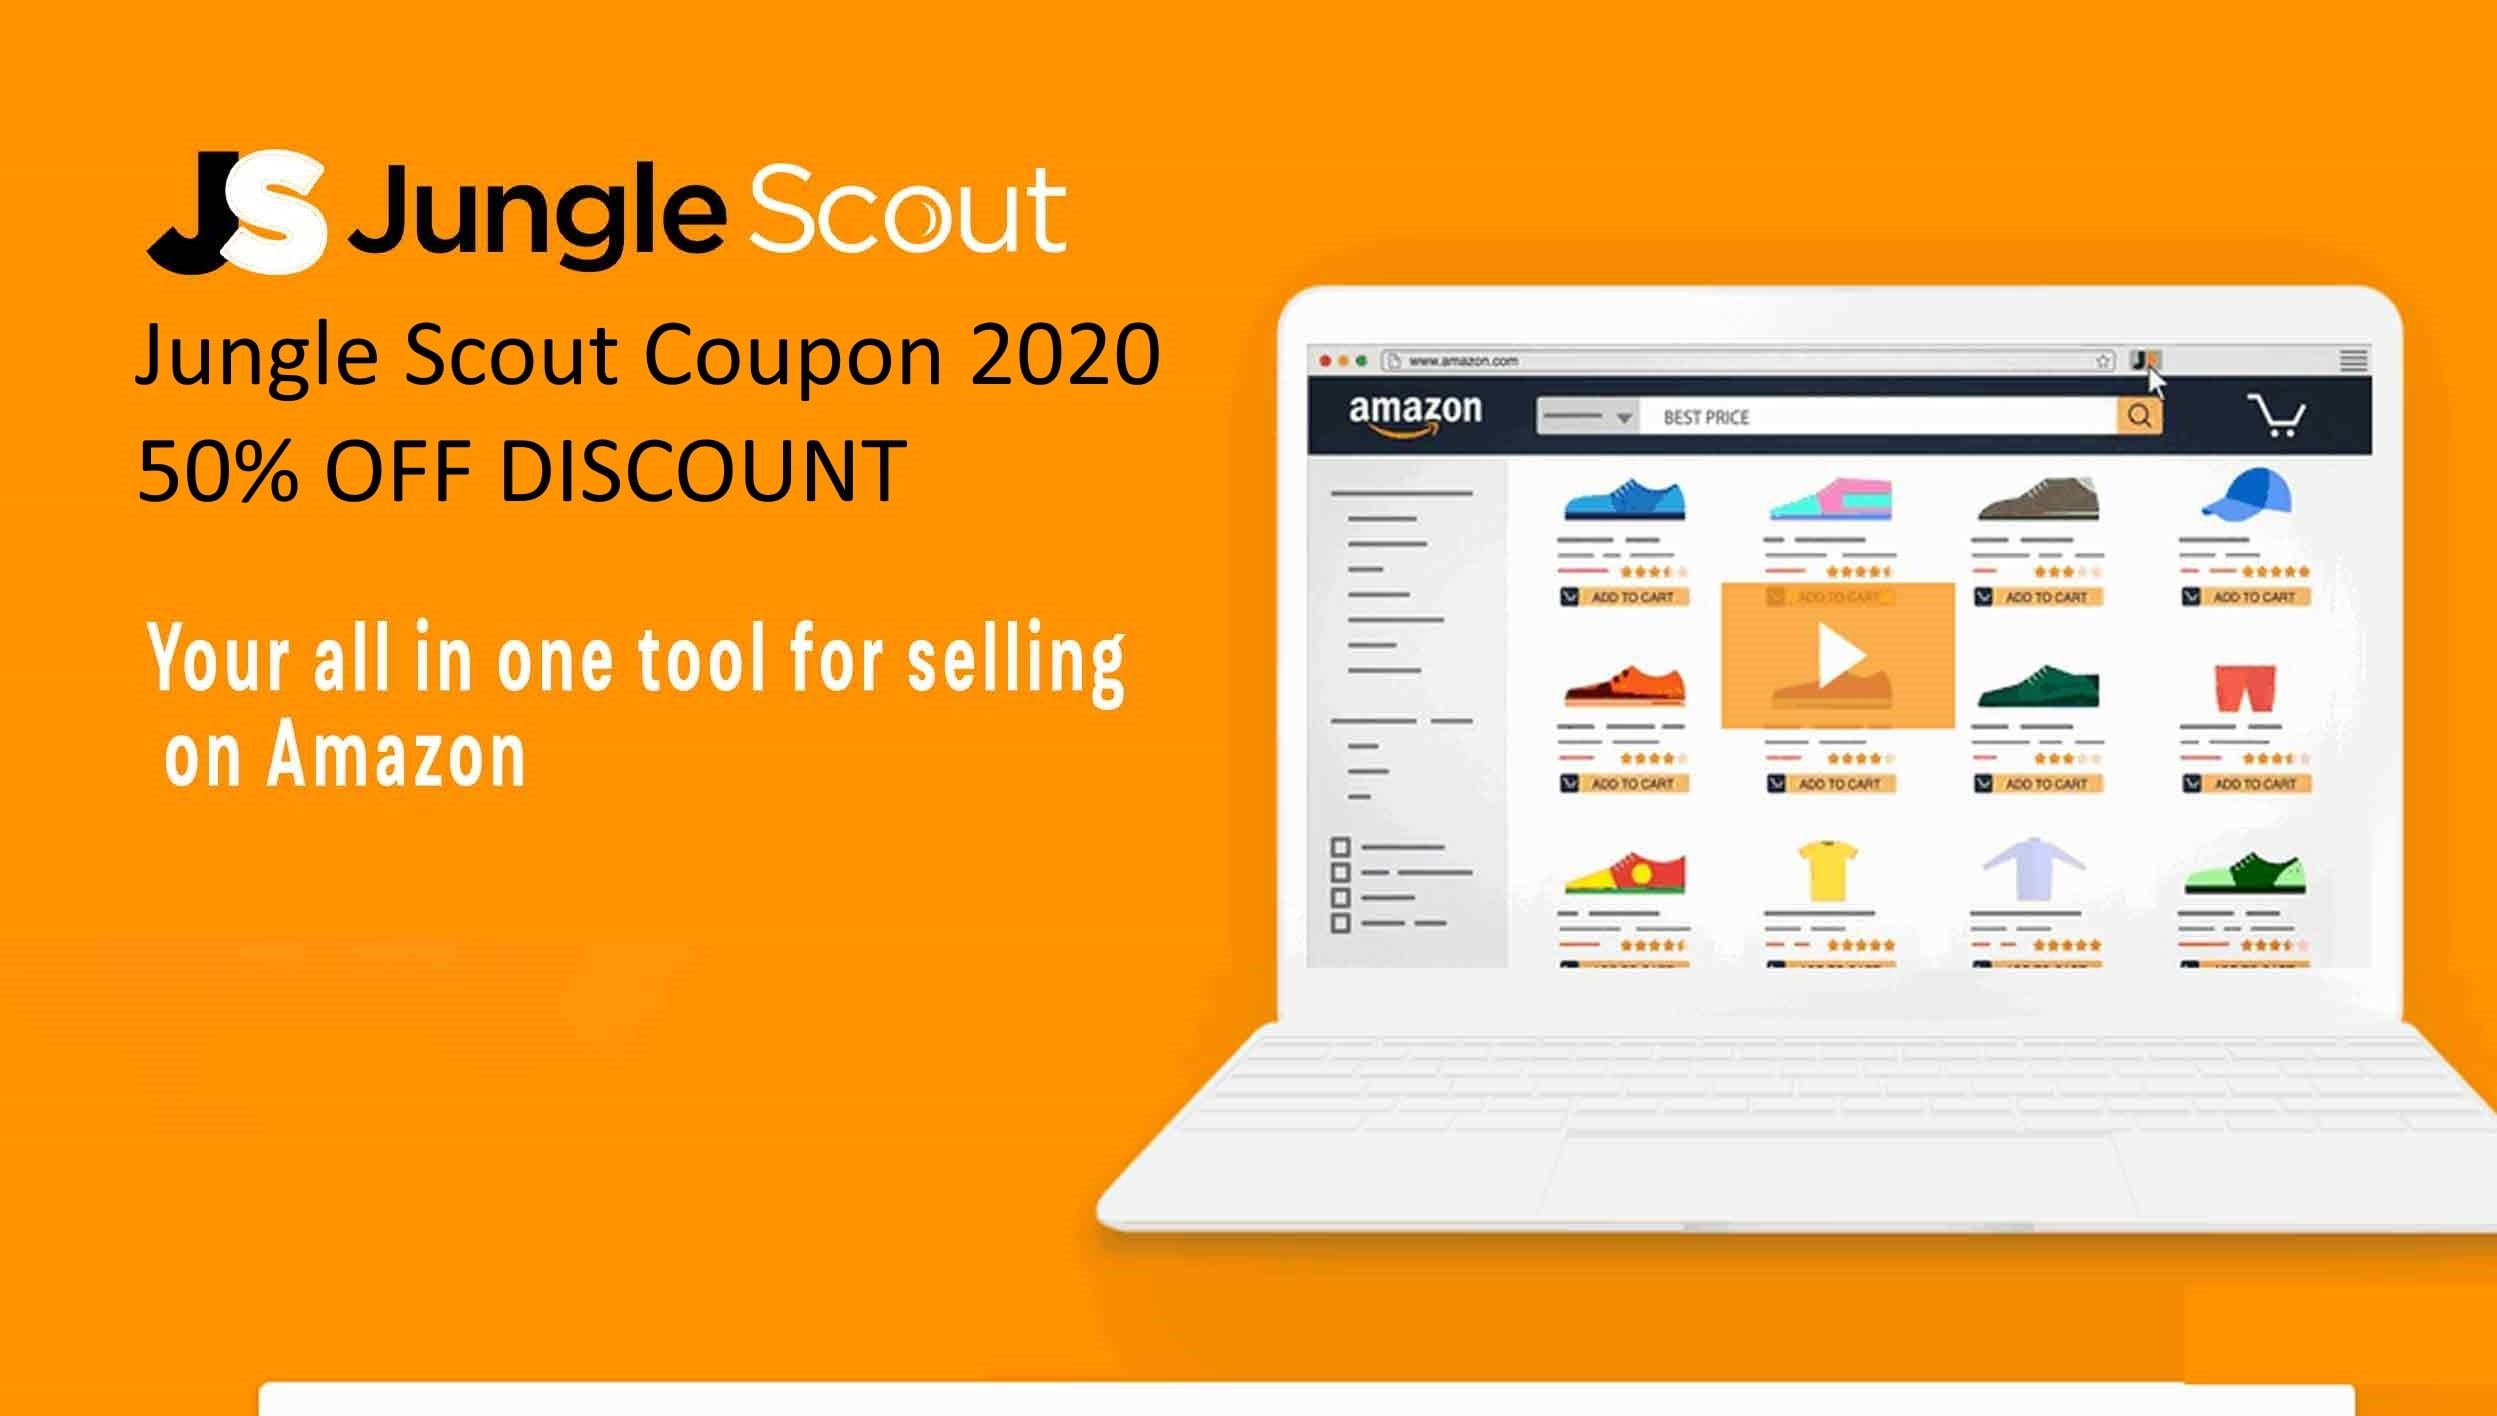 Jungle Scout Coupons Amazon Fba Growing Your Business